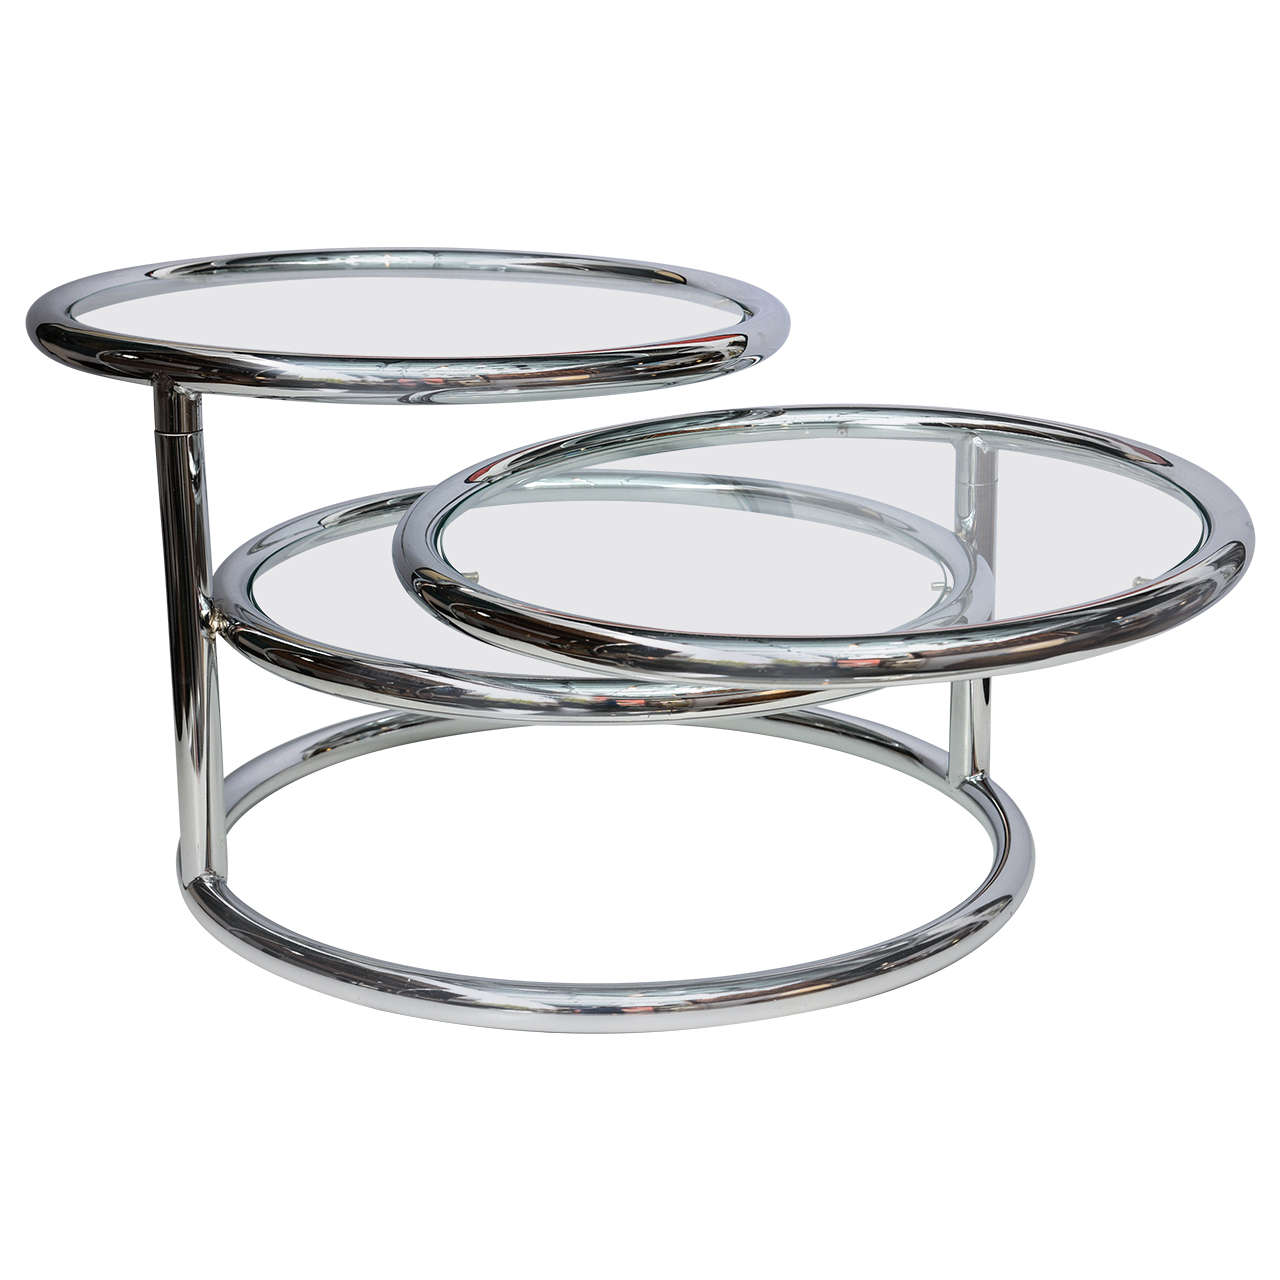 Etonnant Milo Baughman Style Swivel Tiered Circles Coffee Table For Sale